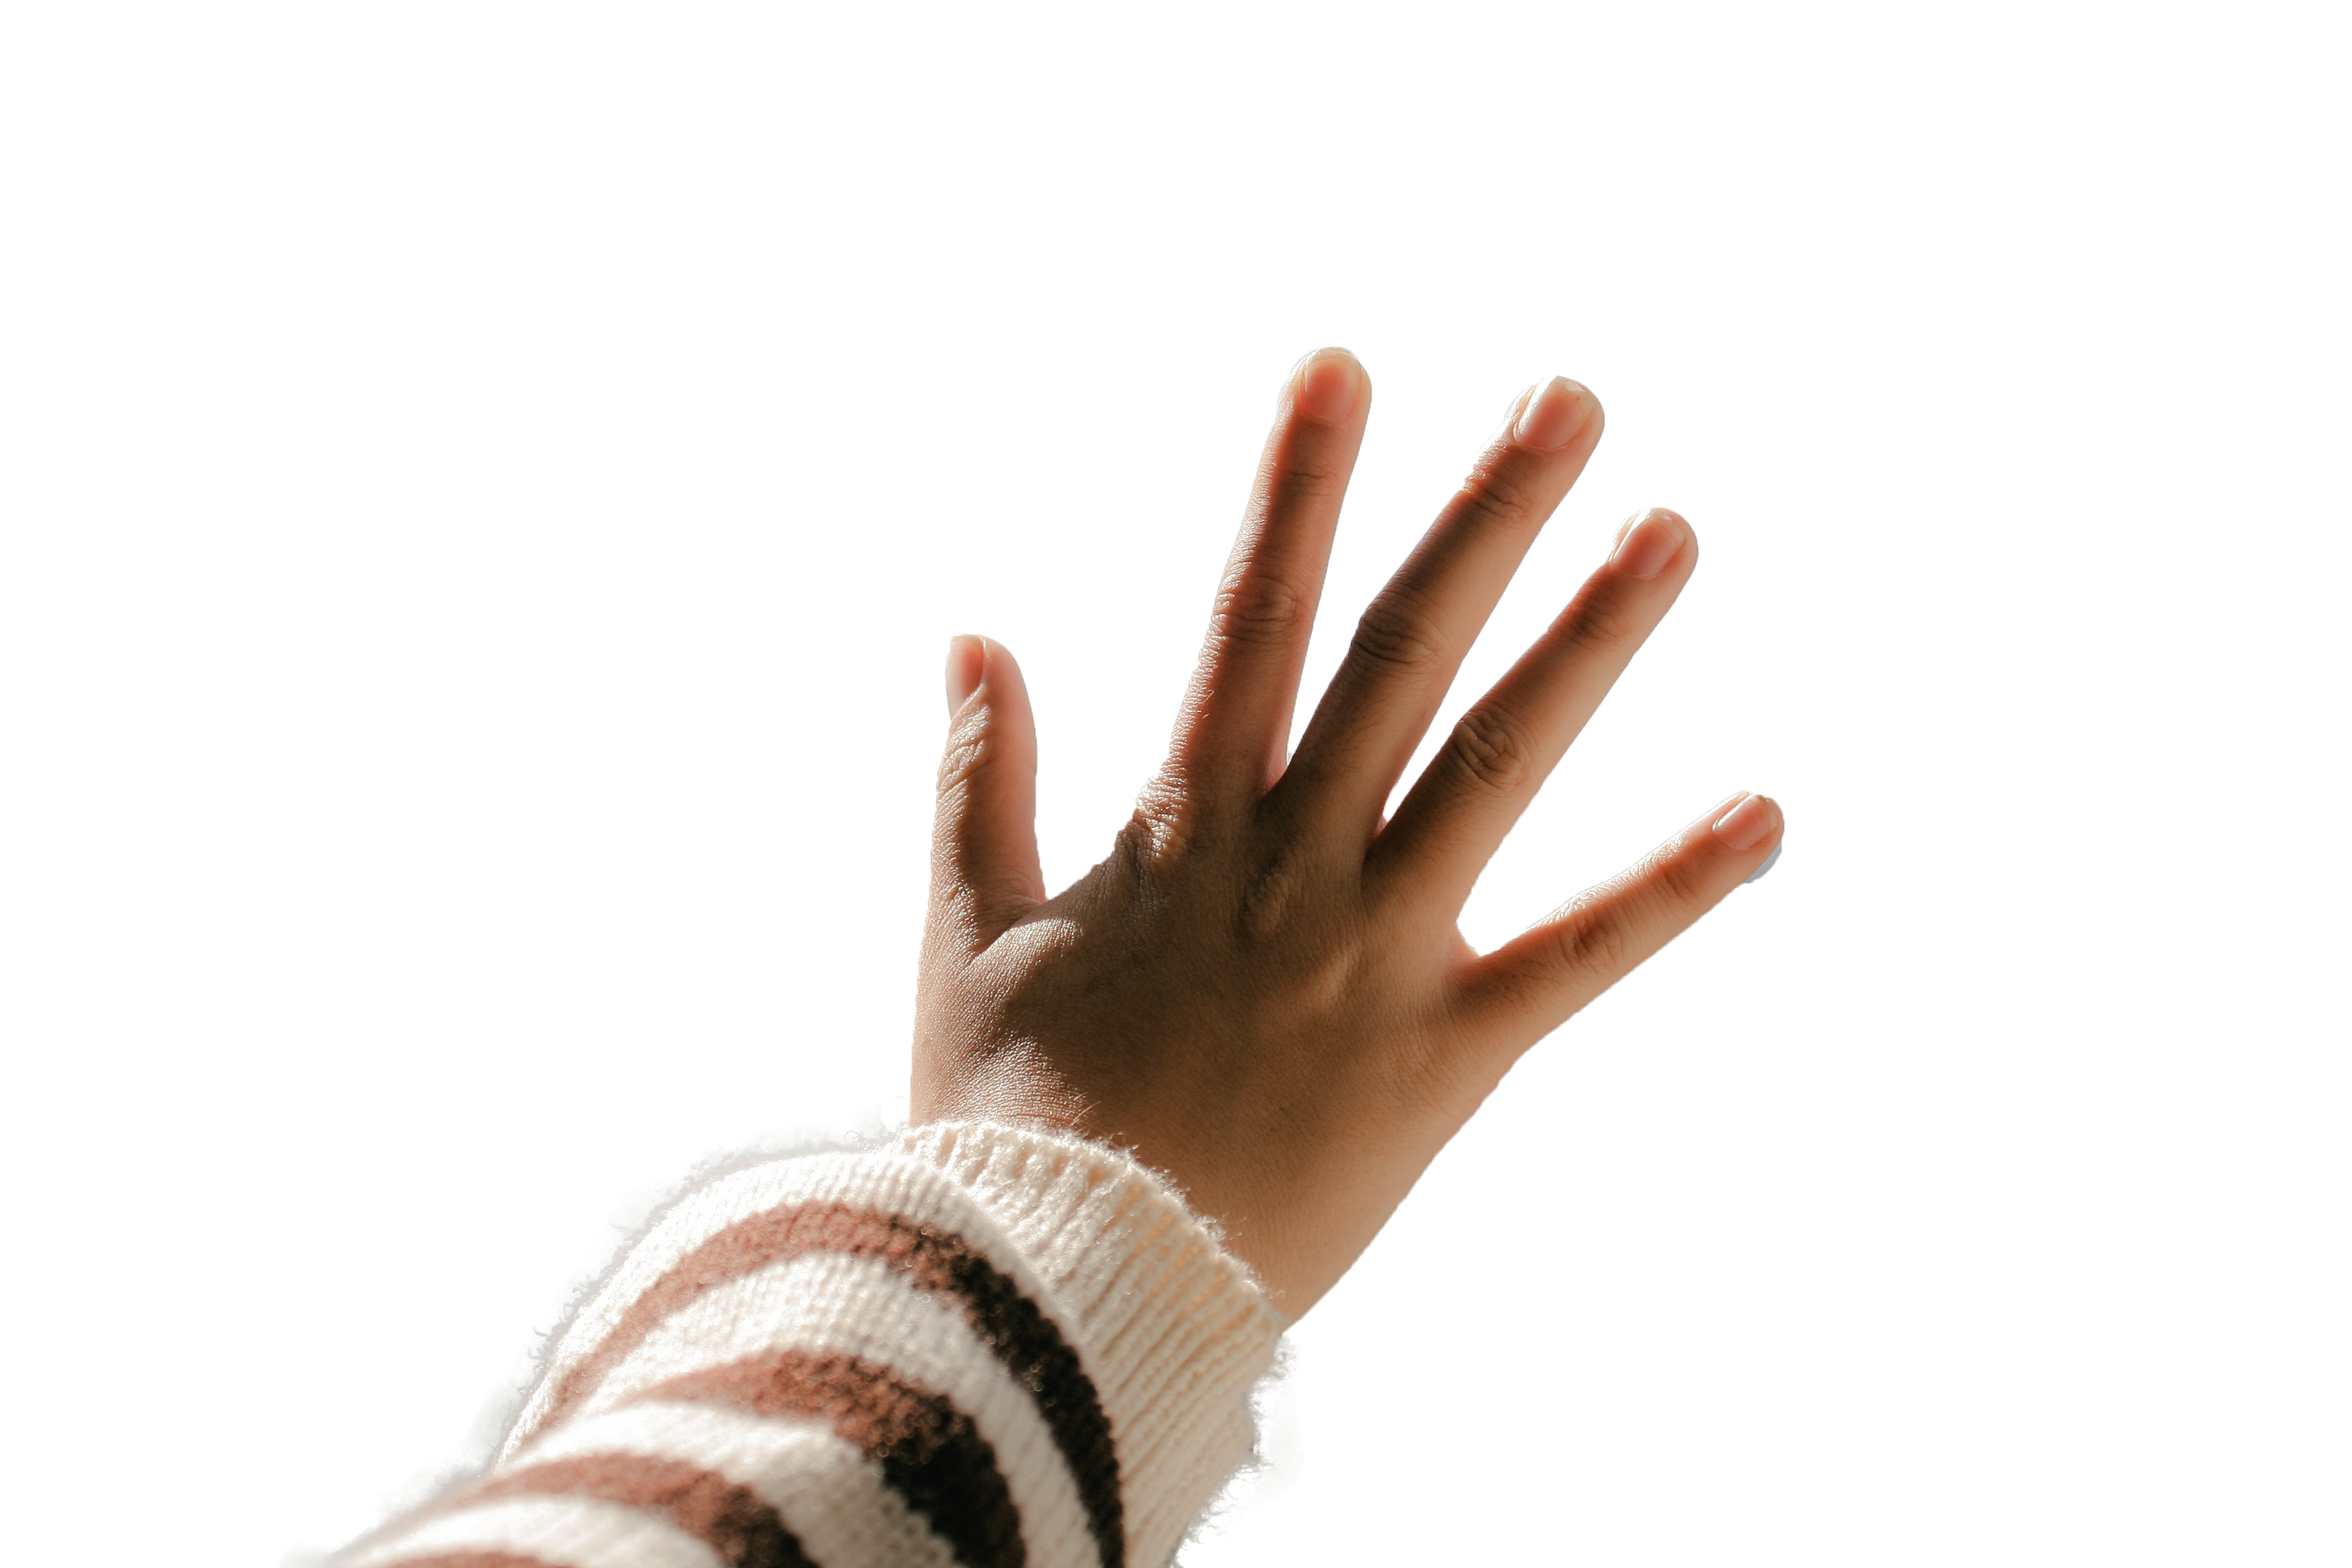 Showing Open Hand Closeup Transparent Background PNG